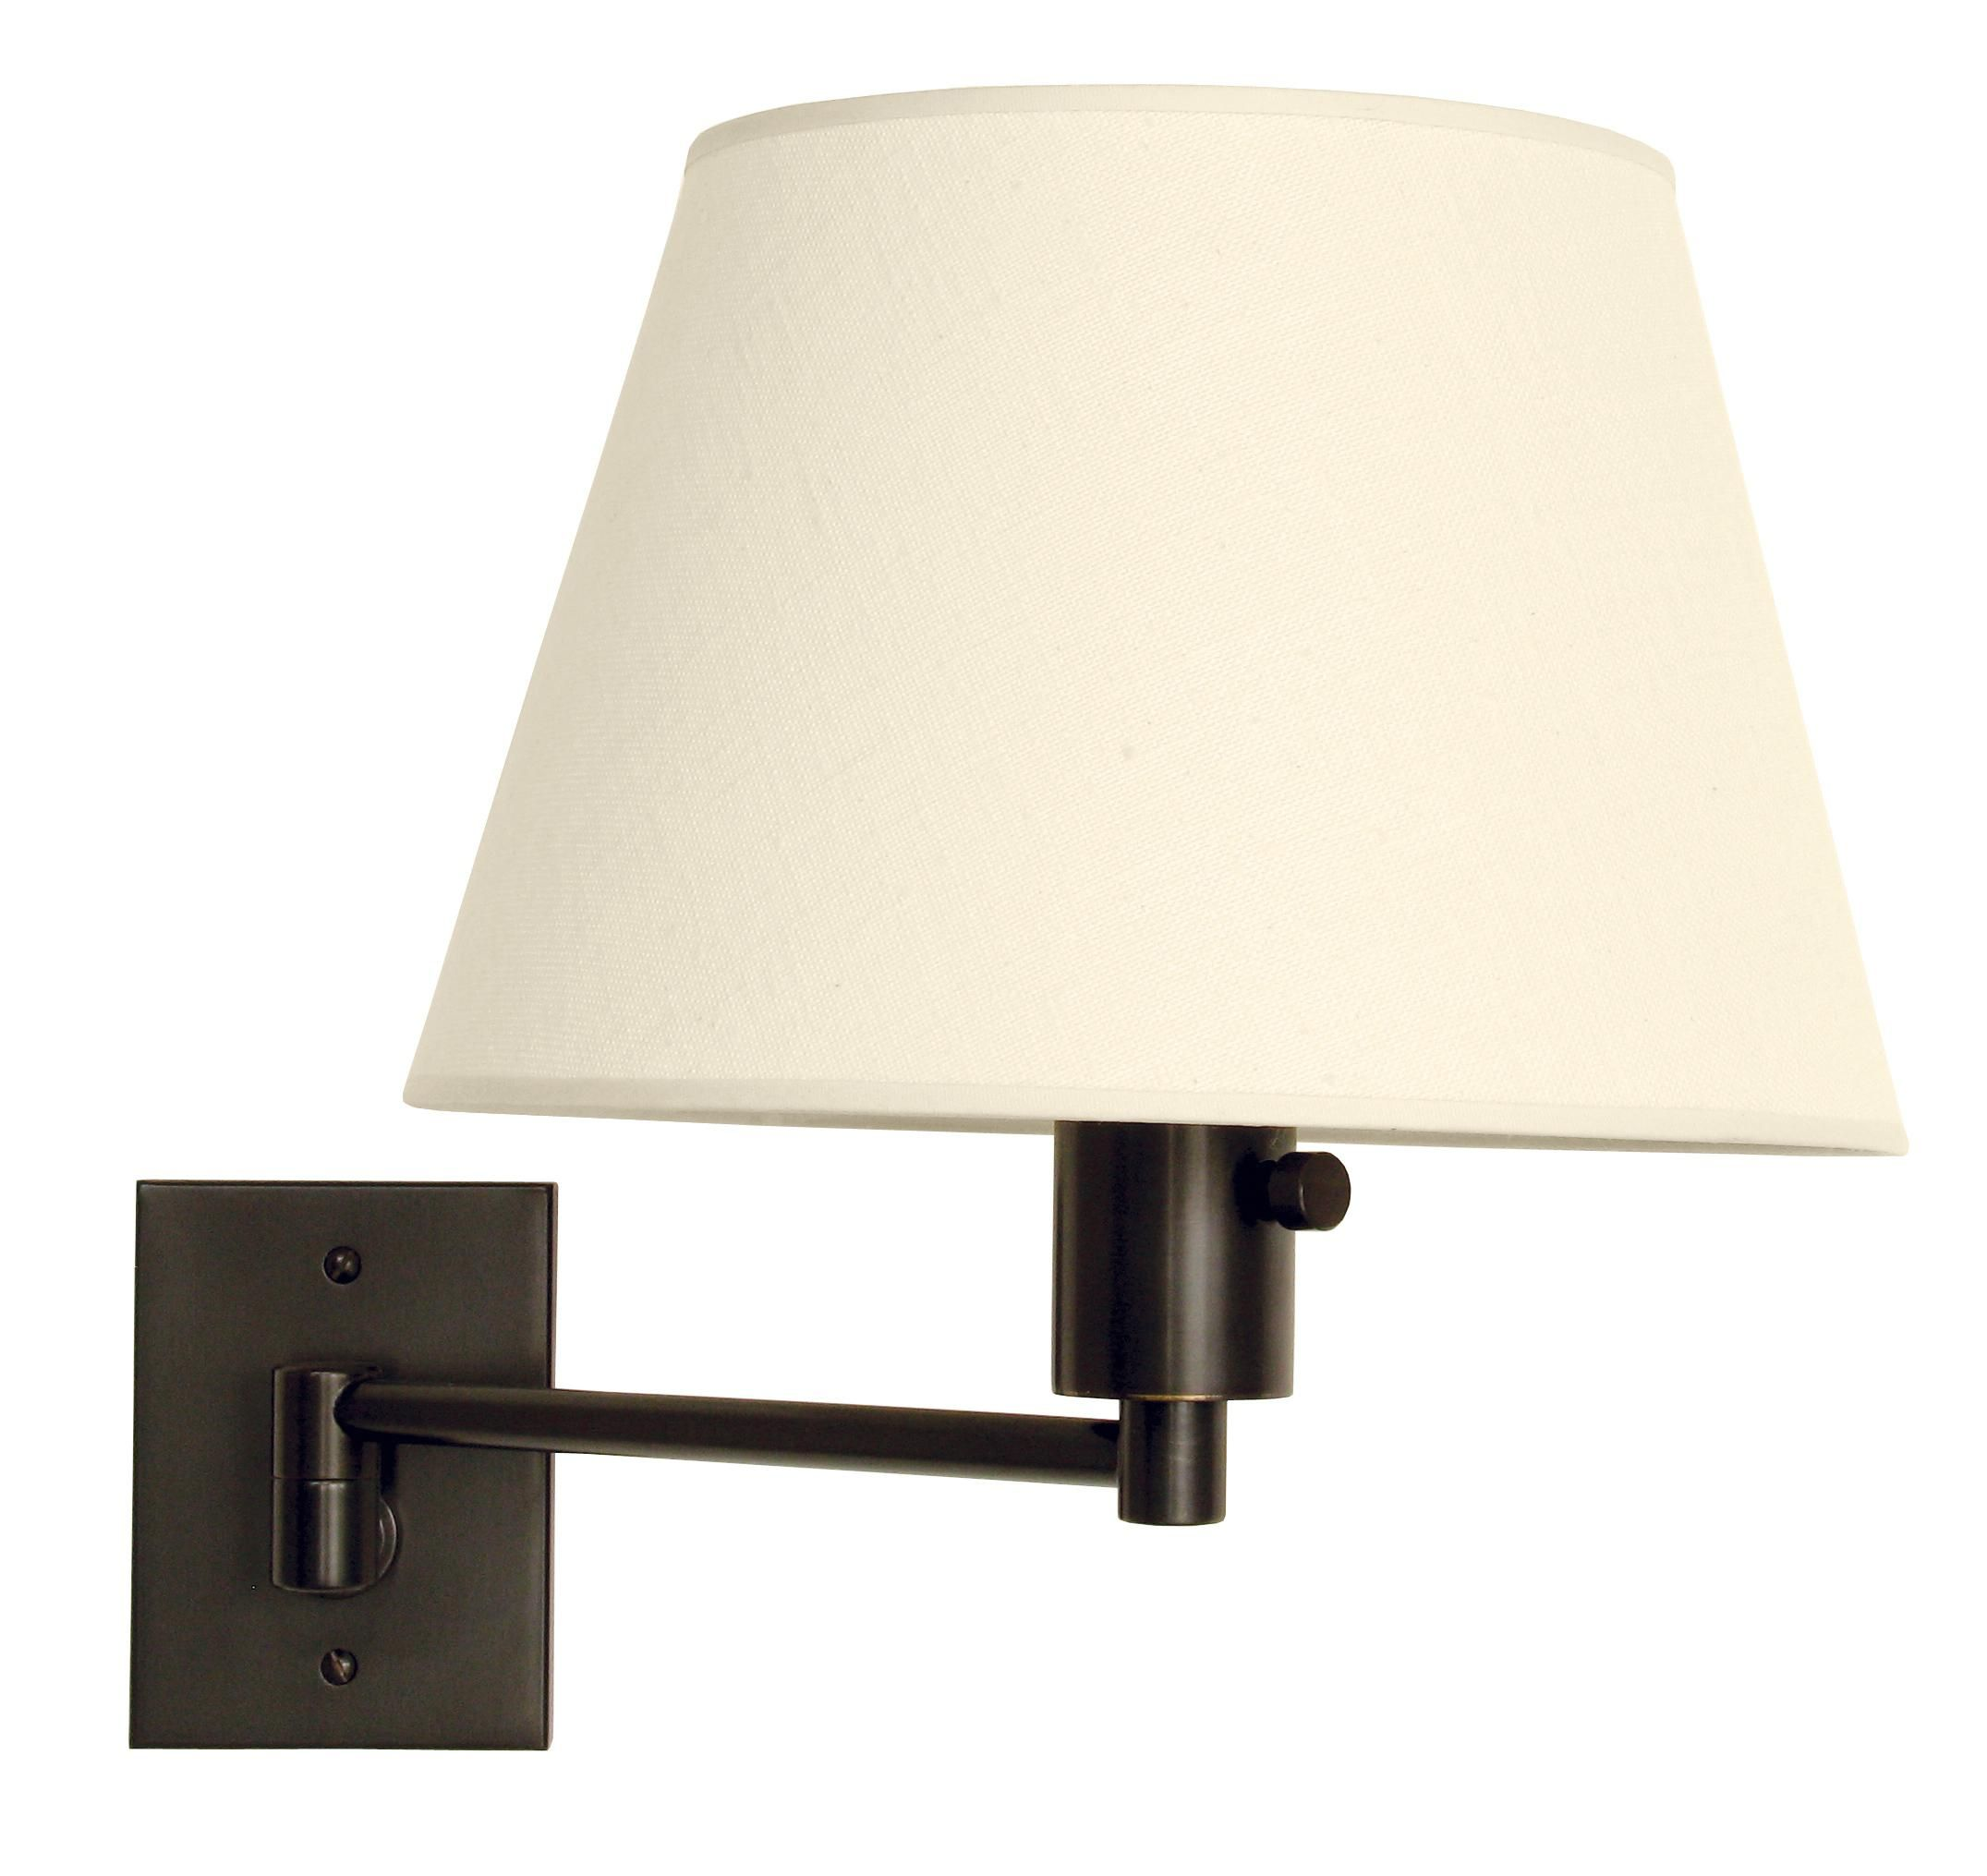 Urban Boulevard Bronze Hardwired Swing Arm Wall Lamp